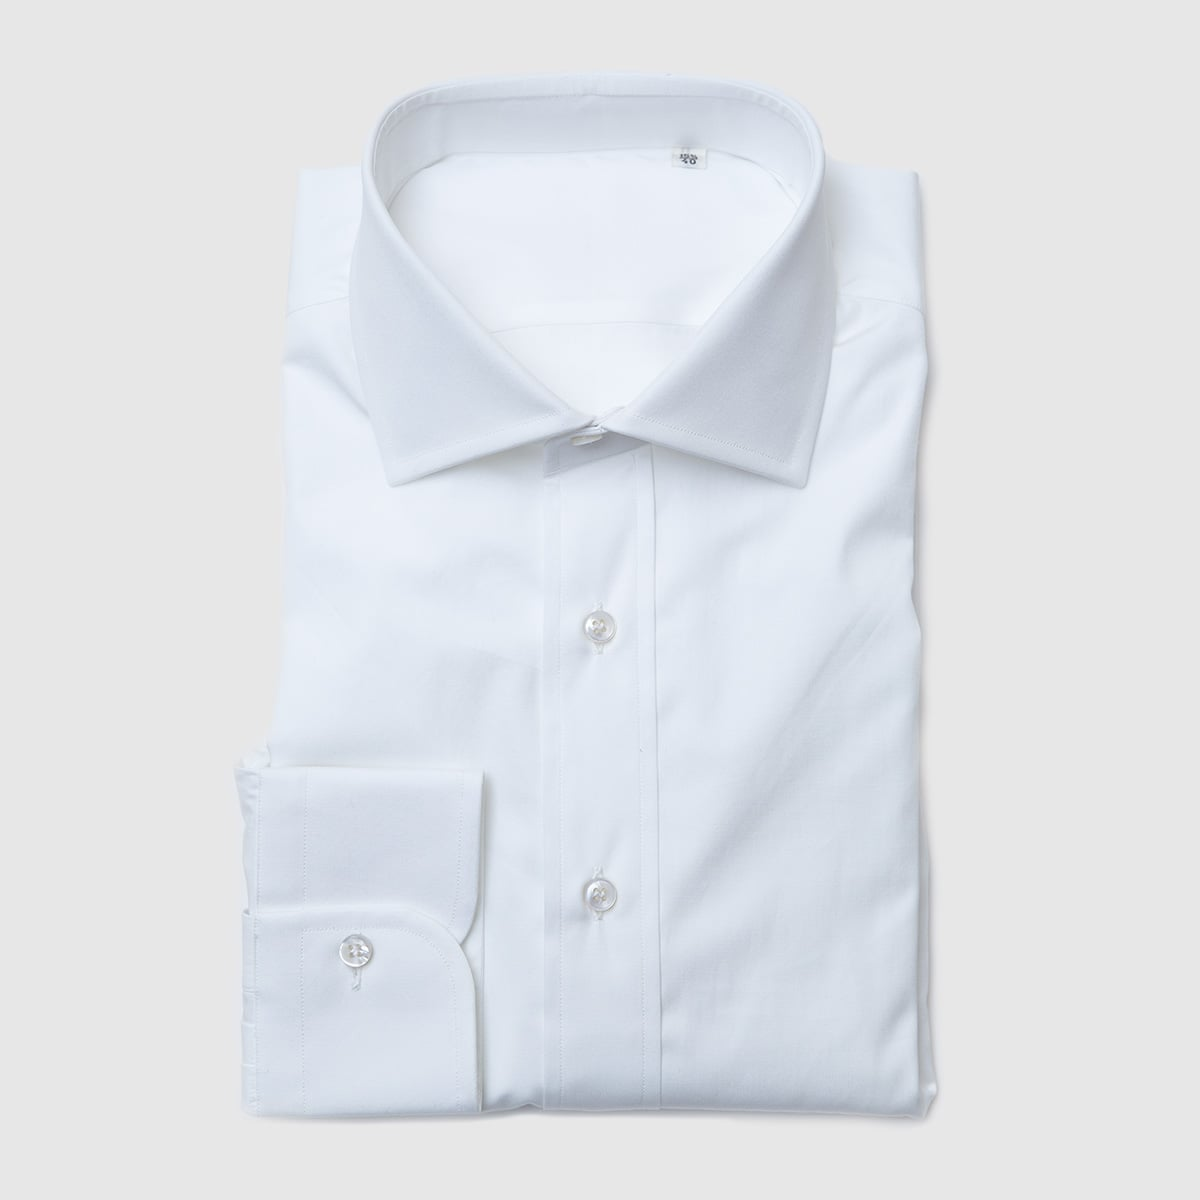 White popeline shirt